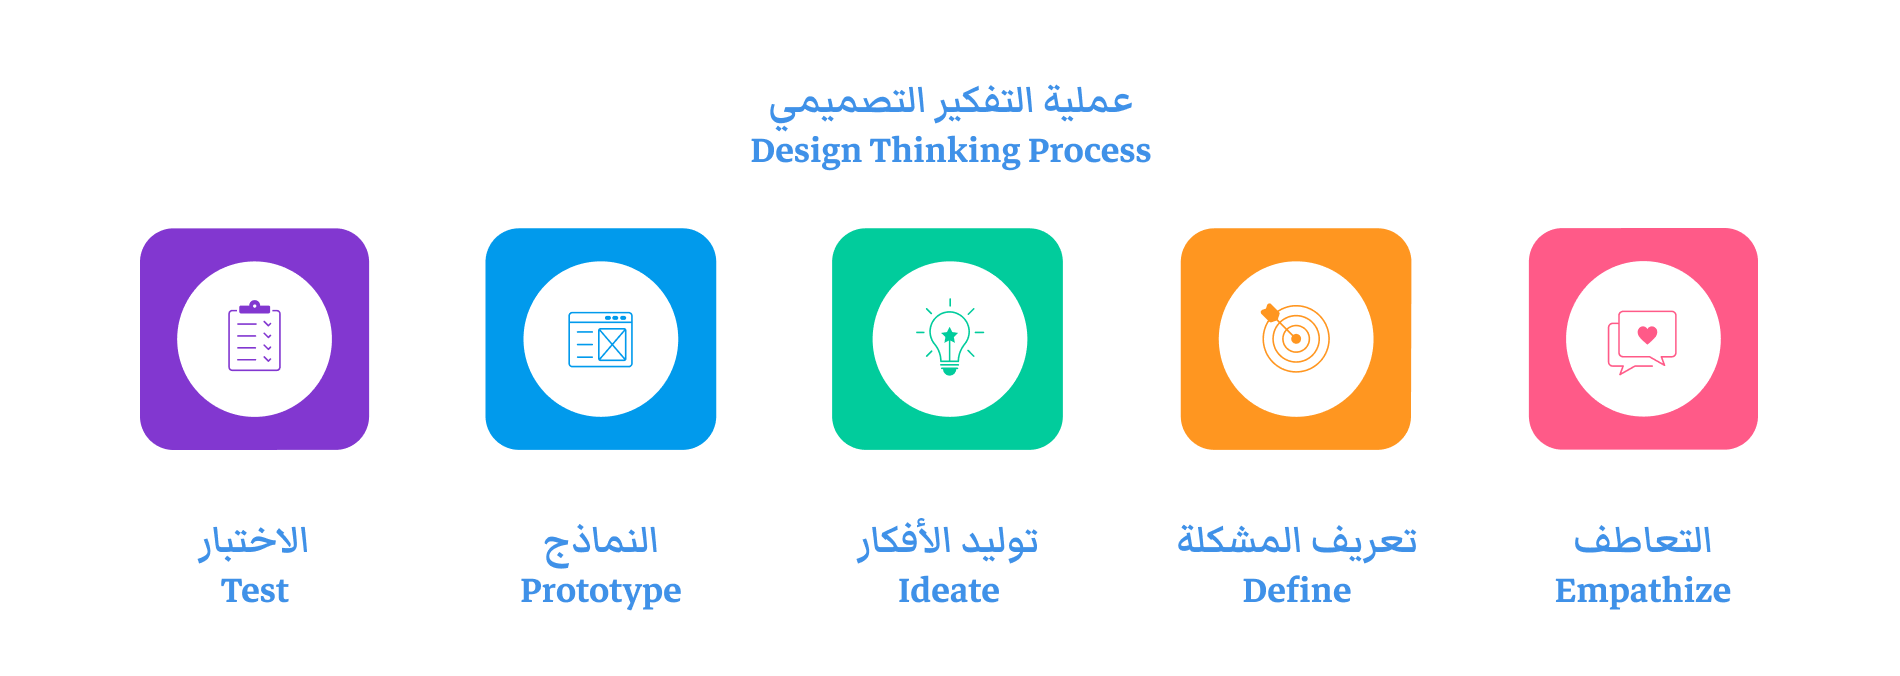 design_thinking_process.png